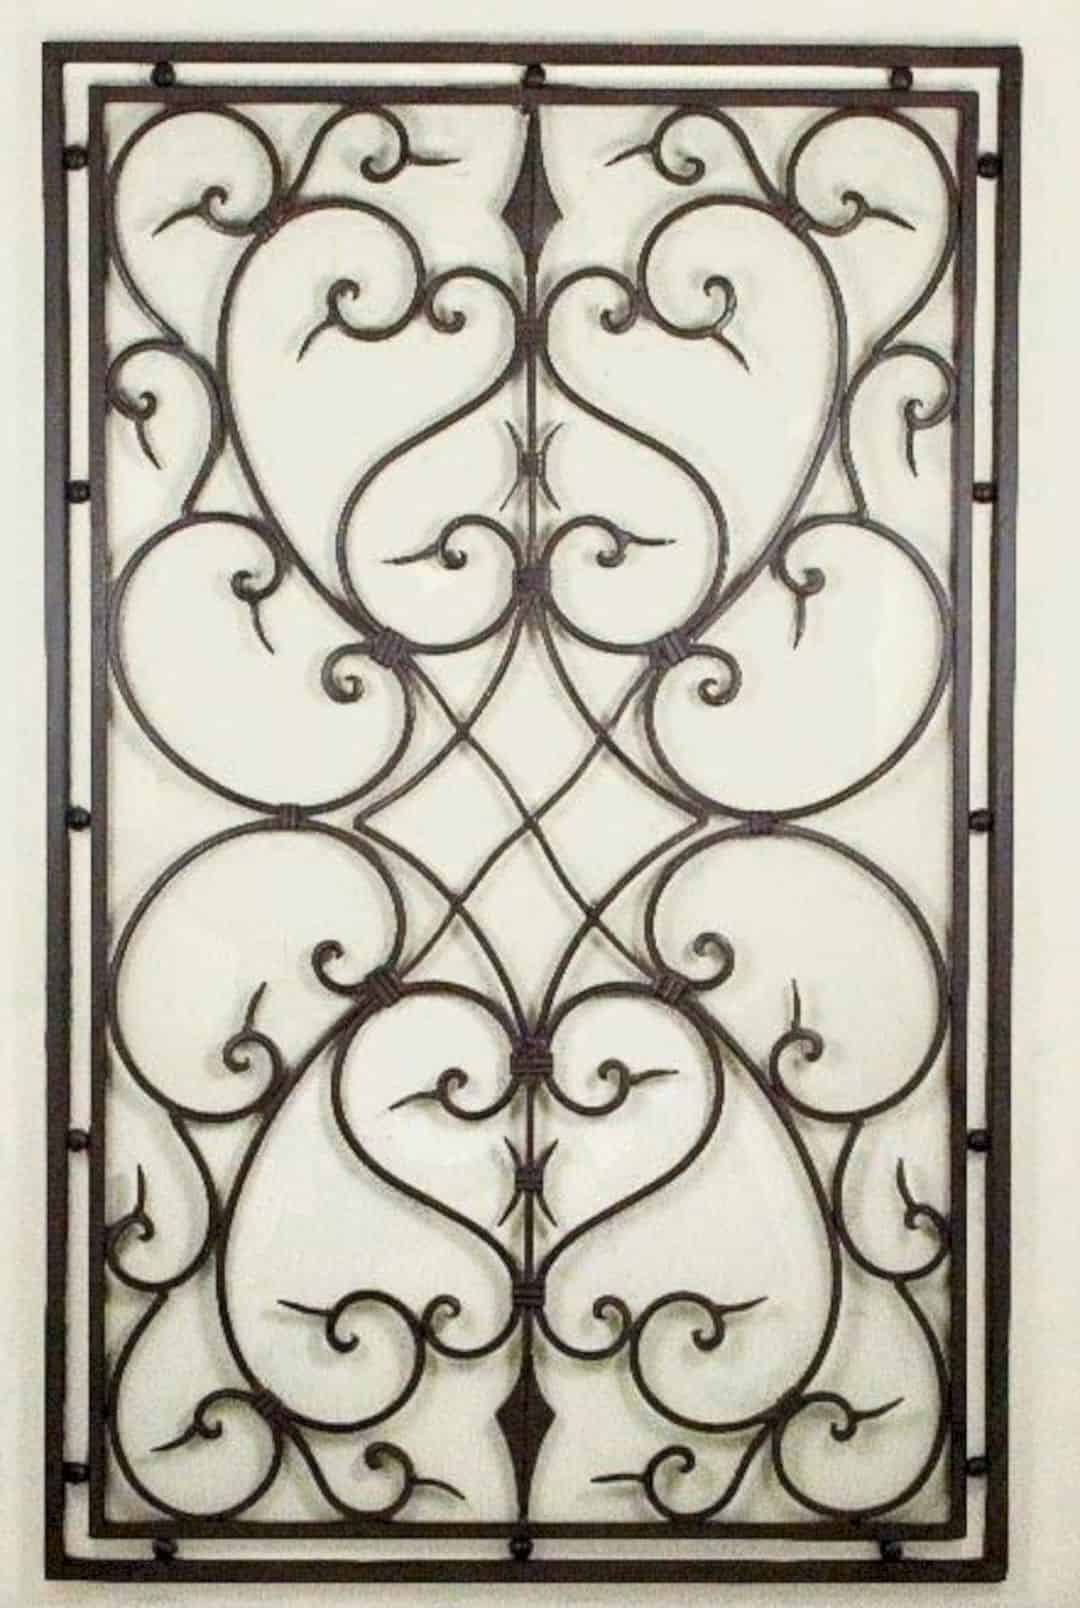 10 Superb Iron Wall Decorations With Images Iron Wall Art